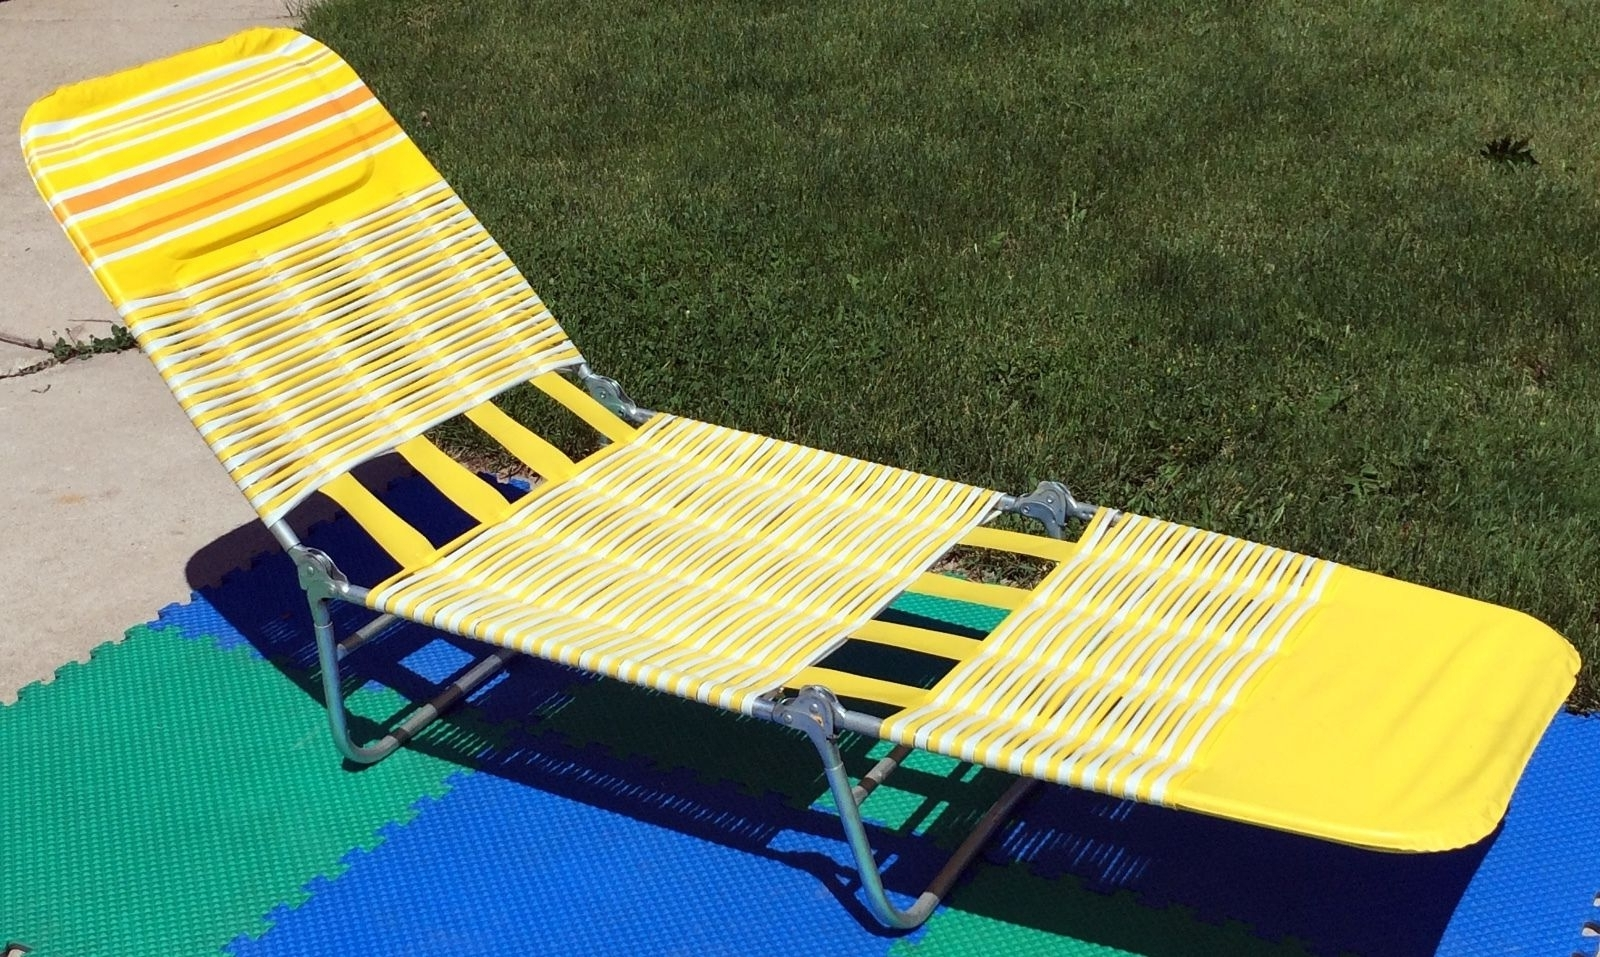 Web Chaise Lounge Lawn Chairs Regarding Famous Uncategorized : Folding Chaise Lounge Chair In Fantastic Chaise (View 12 of 15)